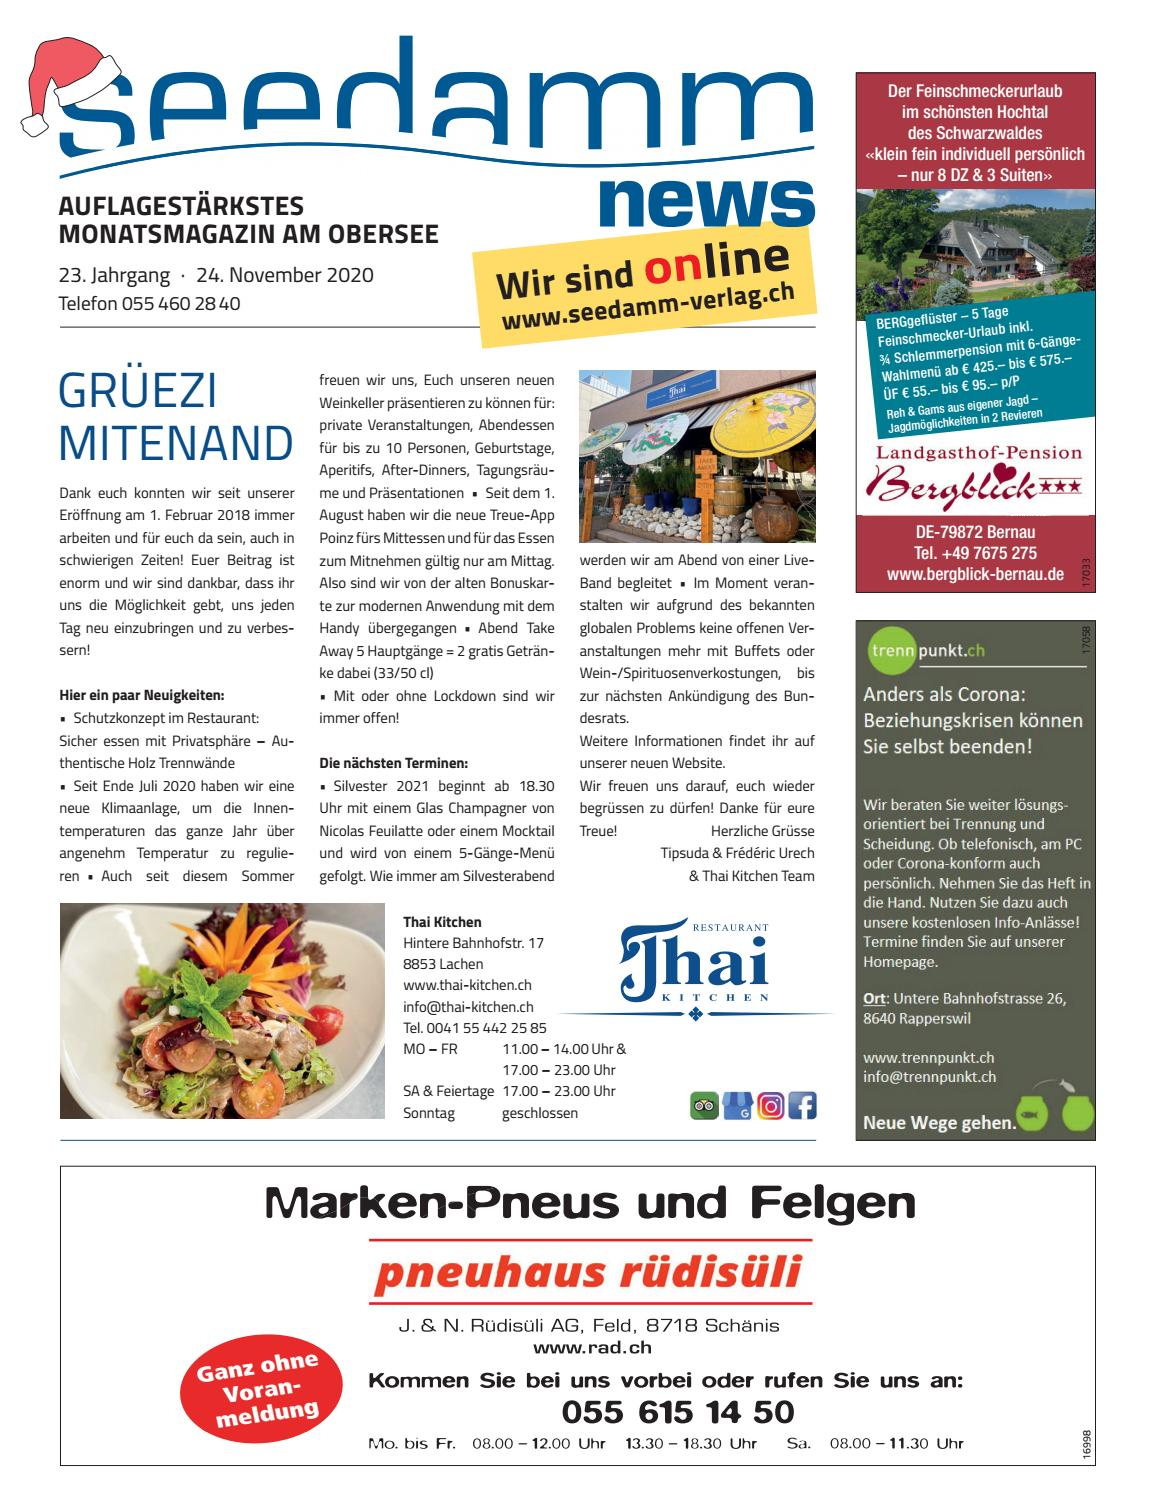 Bettdecken Huttwil Seedamm News November 2020 By Seedamm-verlag - Issuu